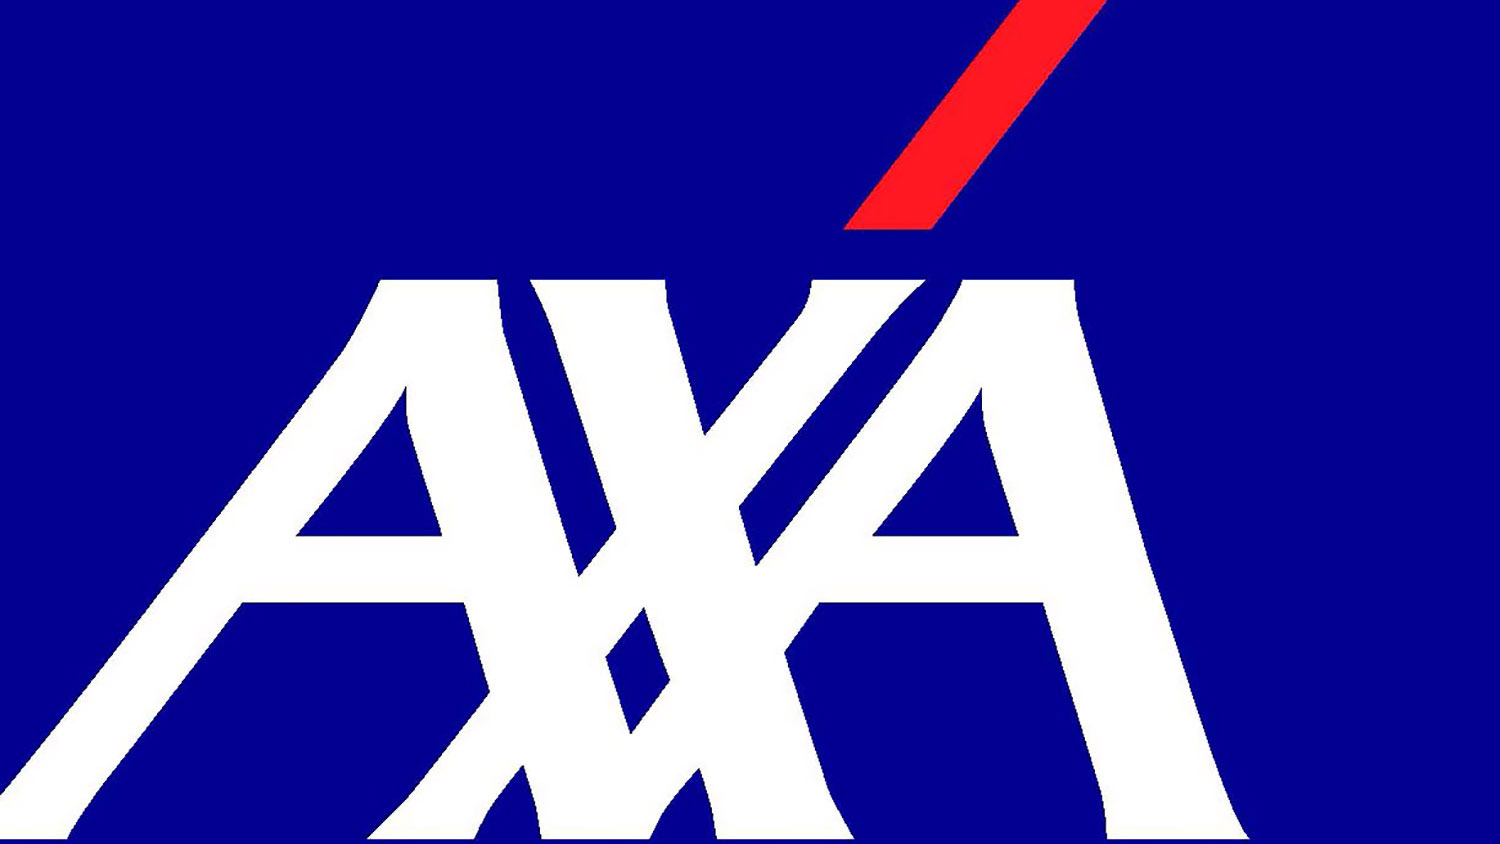 AXA is the number 1 insurance brand for 10 years straight